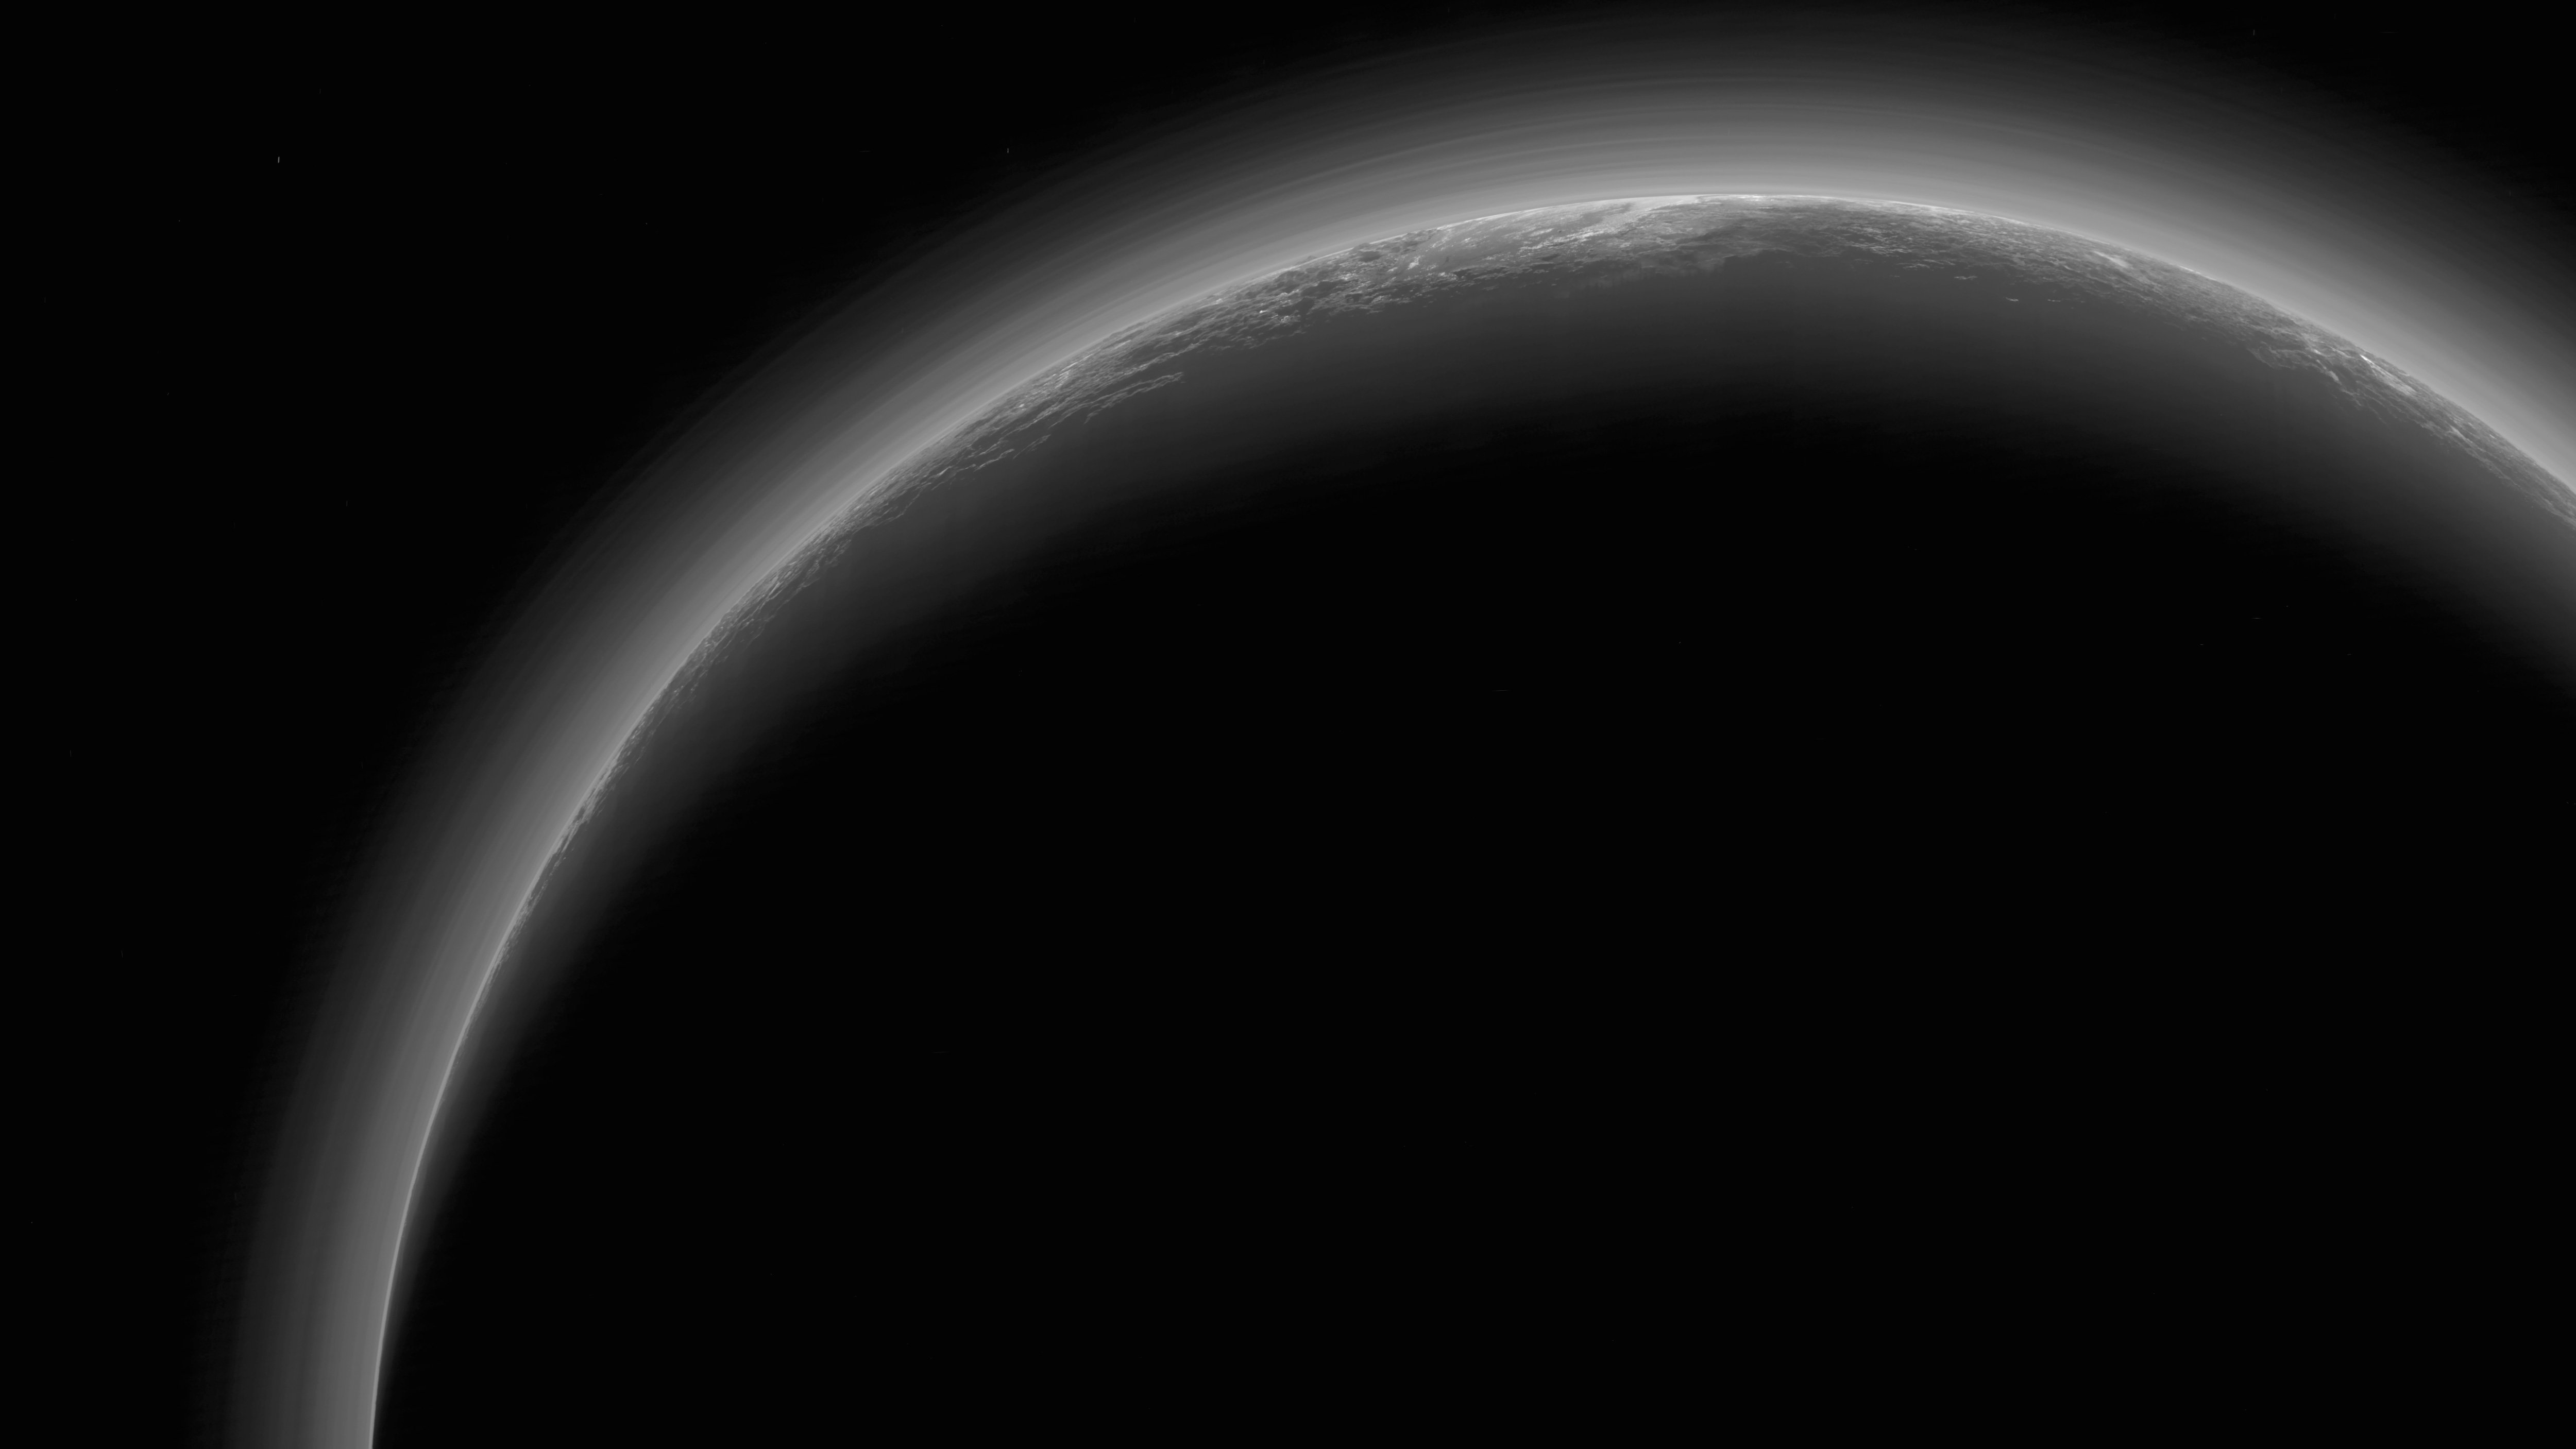 The Dark Side of Pluto wallpaper